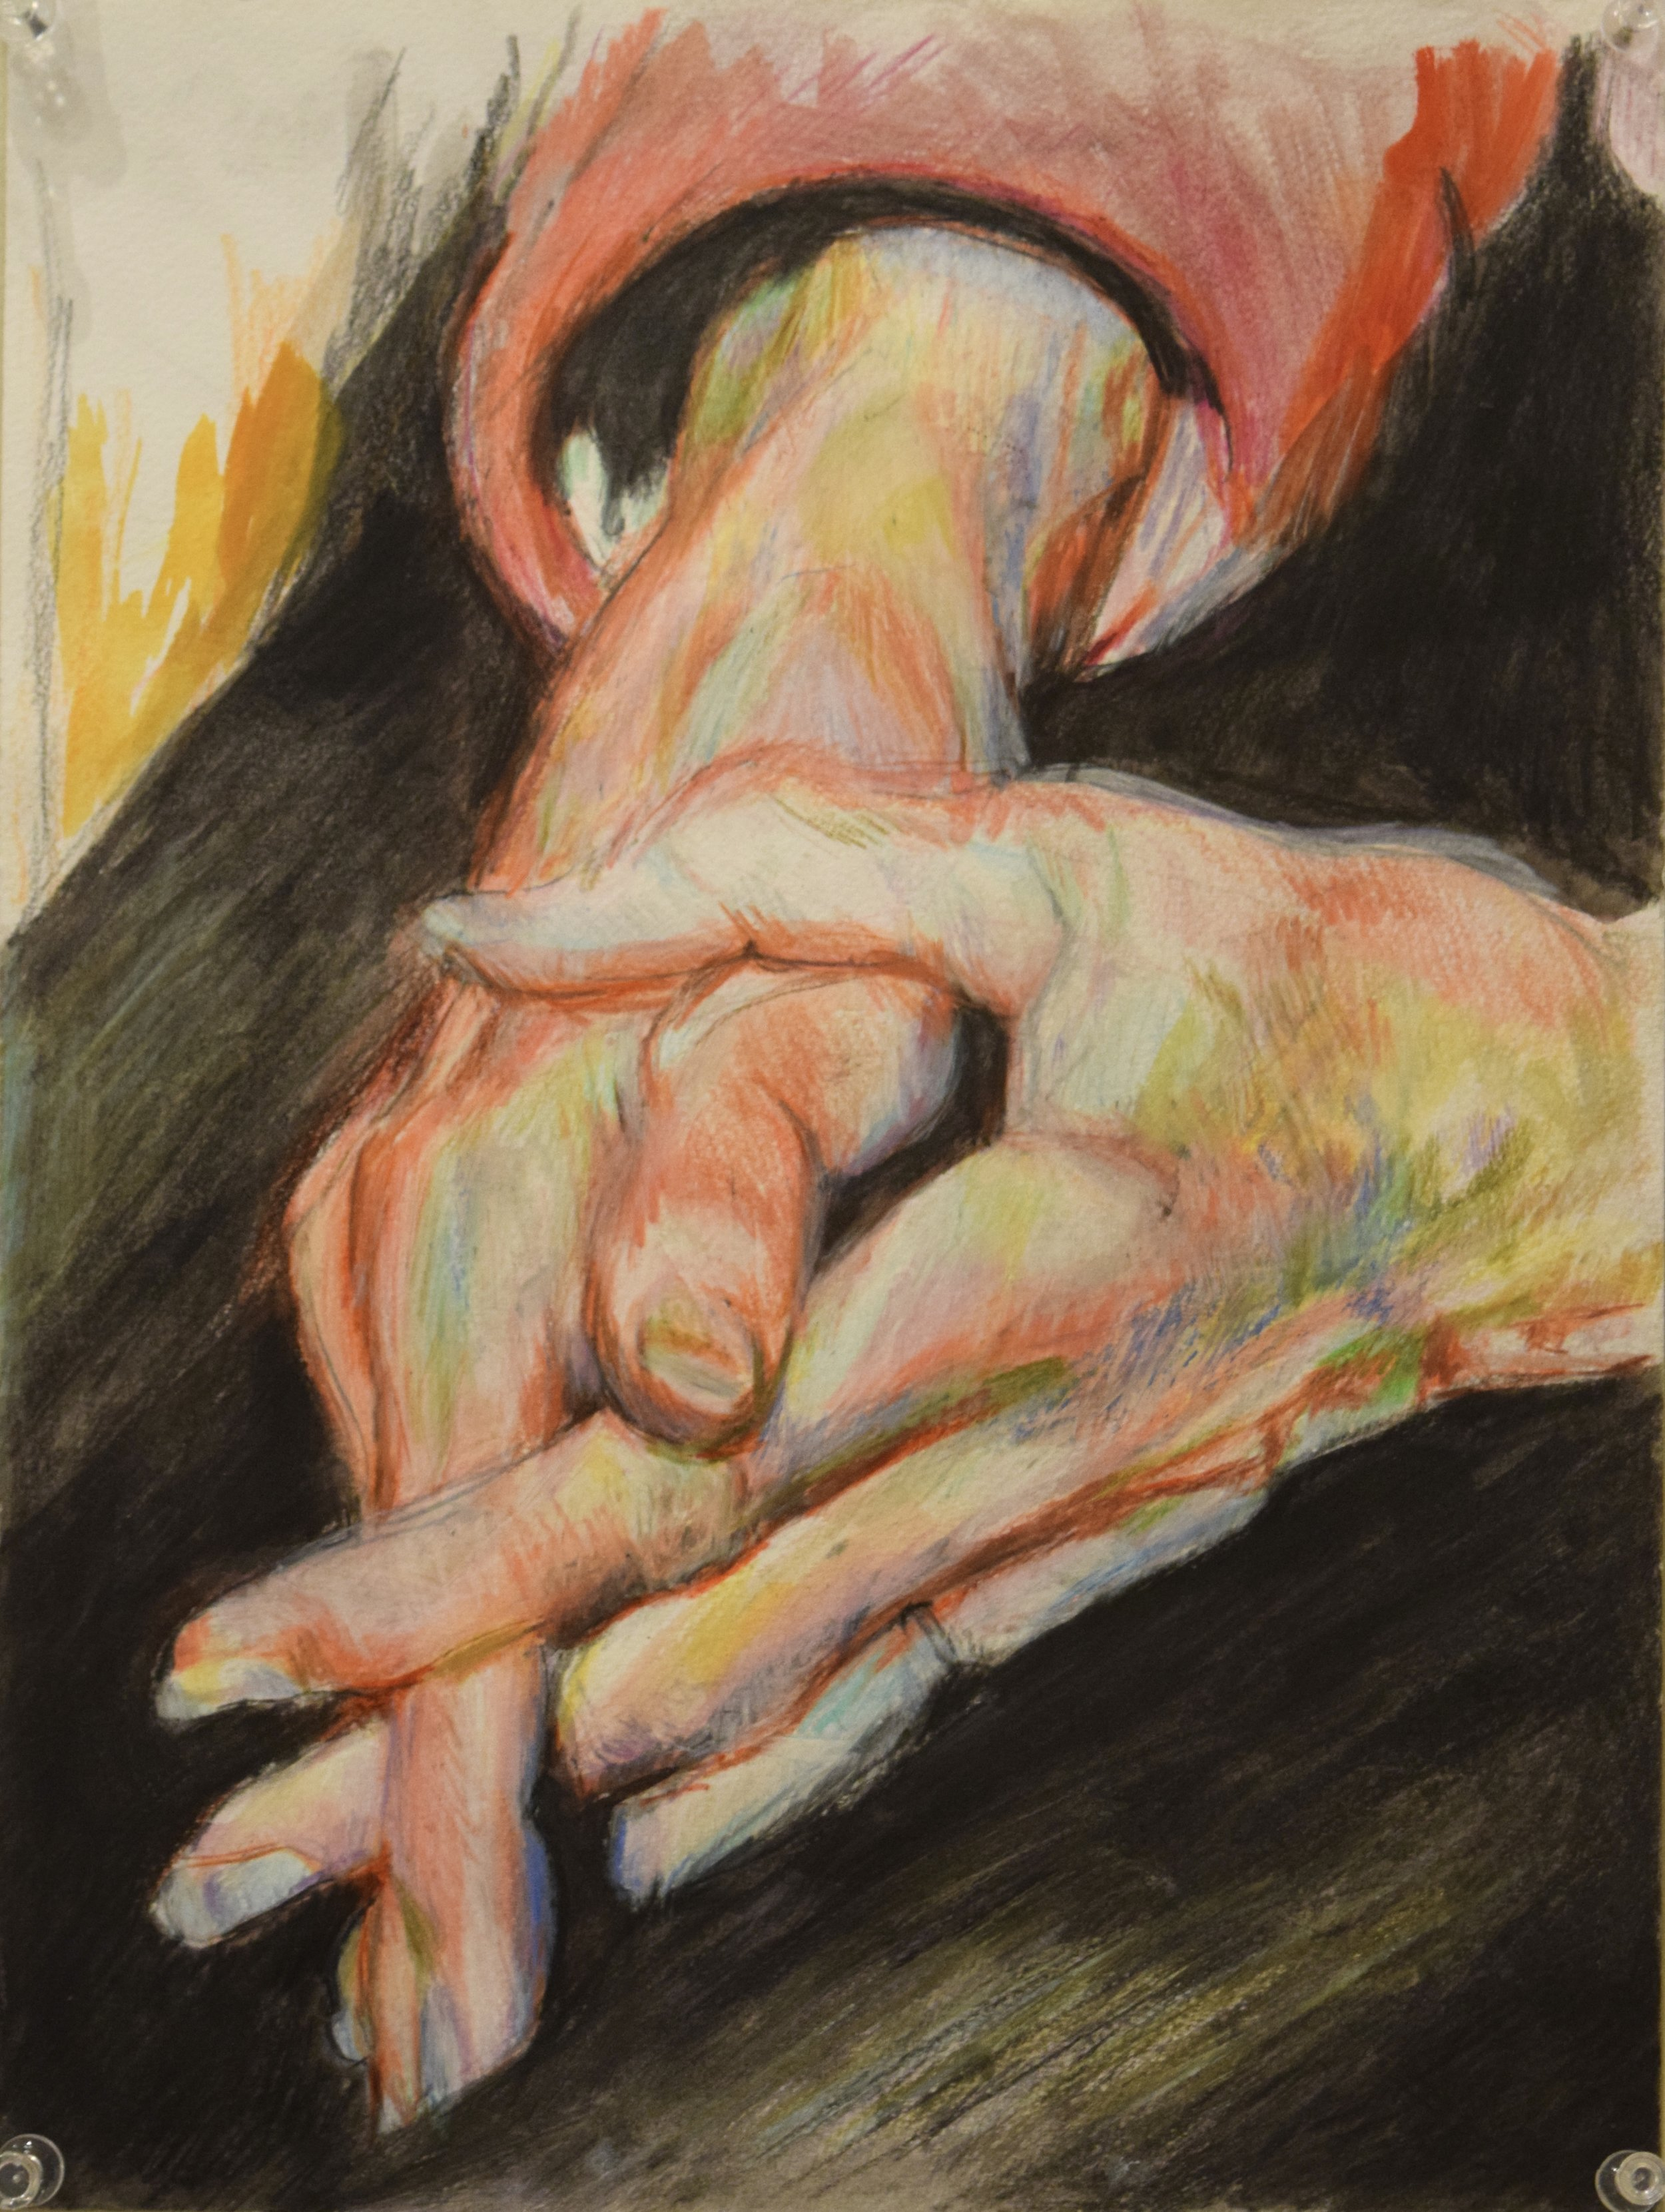 Kathy's hands , Jay Davies, water colour and coloured pencil, 2016